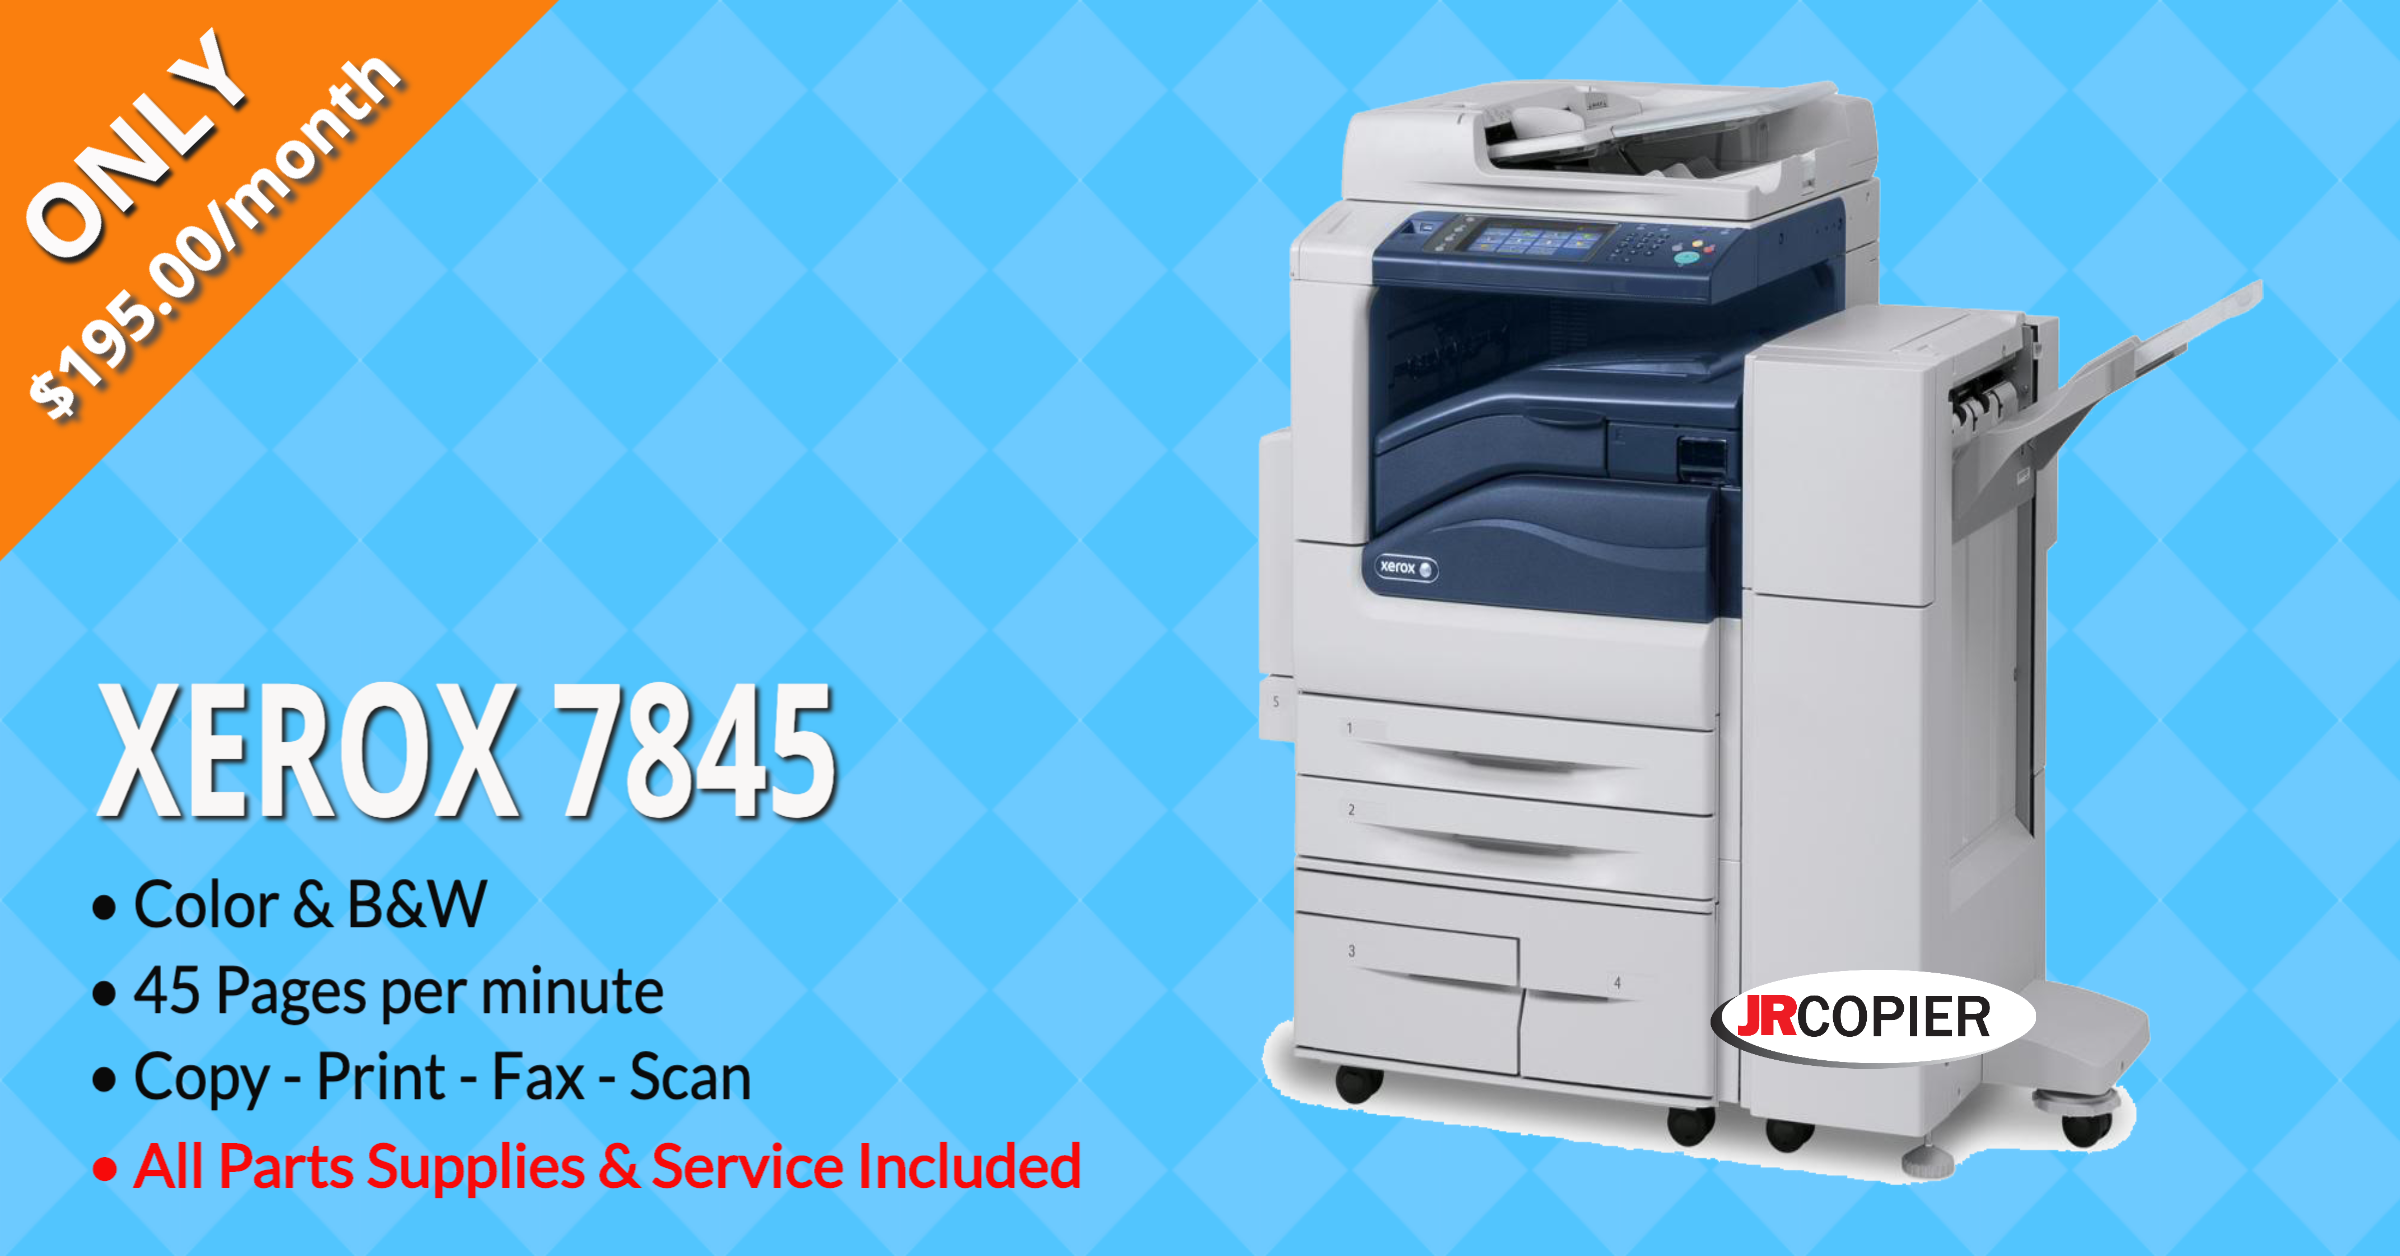 Color Printer 34230, 34231, 34232, 34233, 34234, 34235, 34236, 34237, 34238, 34239, 34240, 34241, 34242, 34243, 34276, 34277, 34278